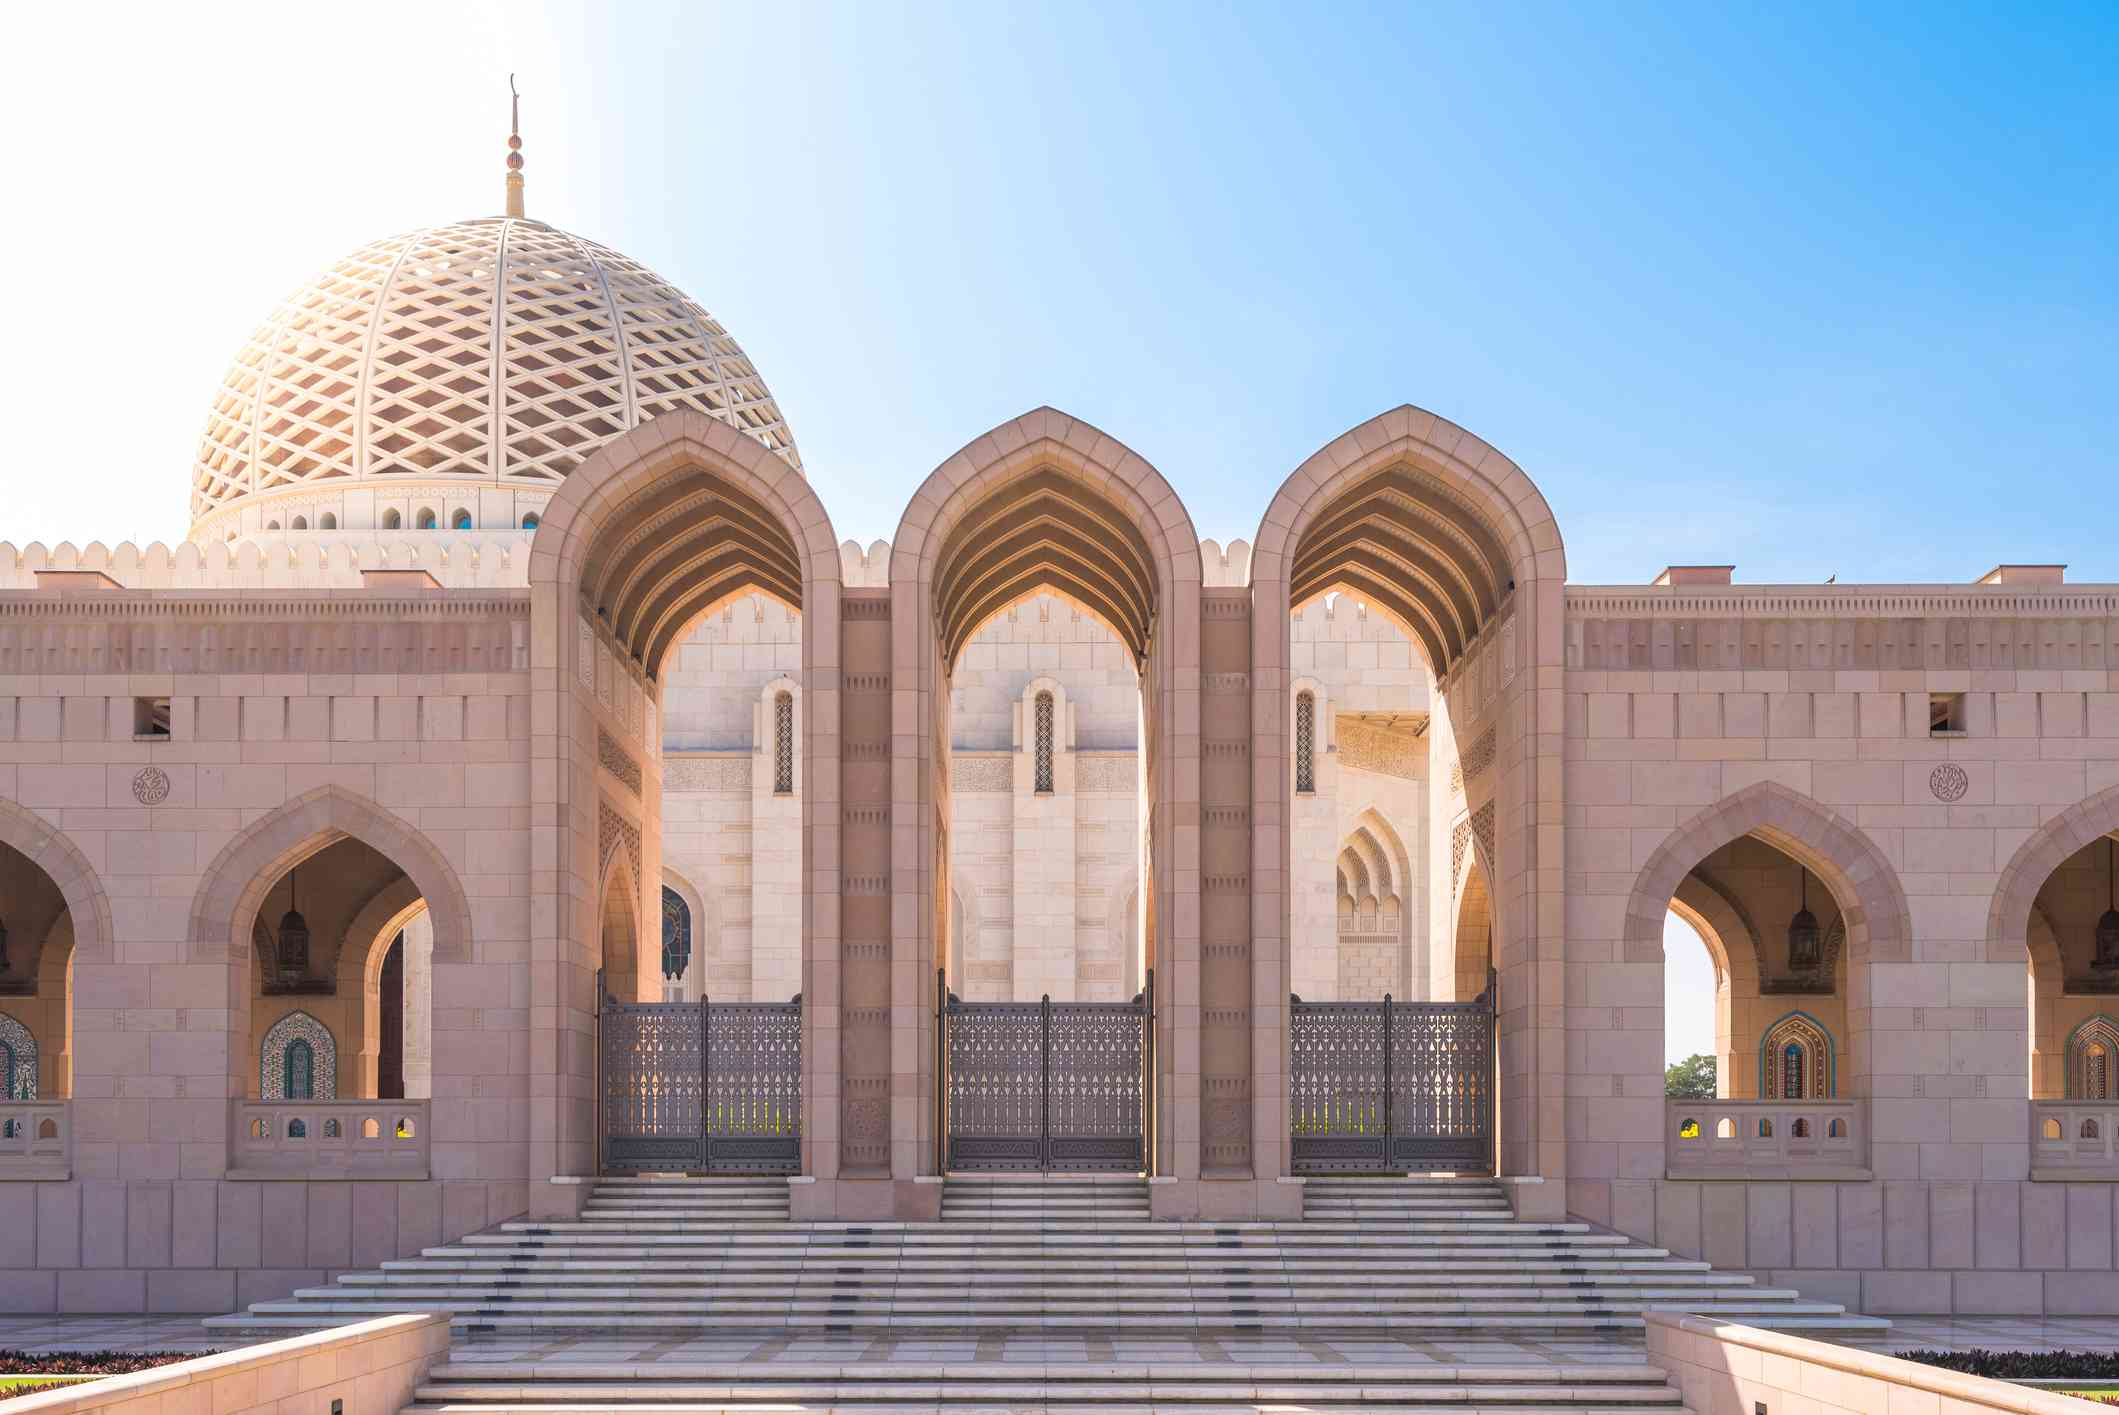 Steps, arches and dome of Sultan Qaboos Grand Mosque in Muscat, Oman